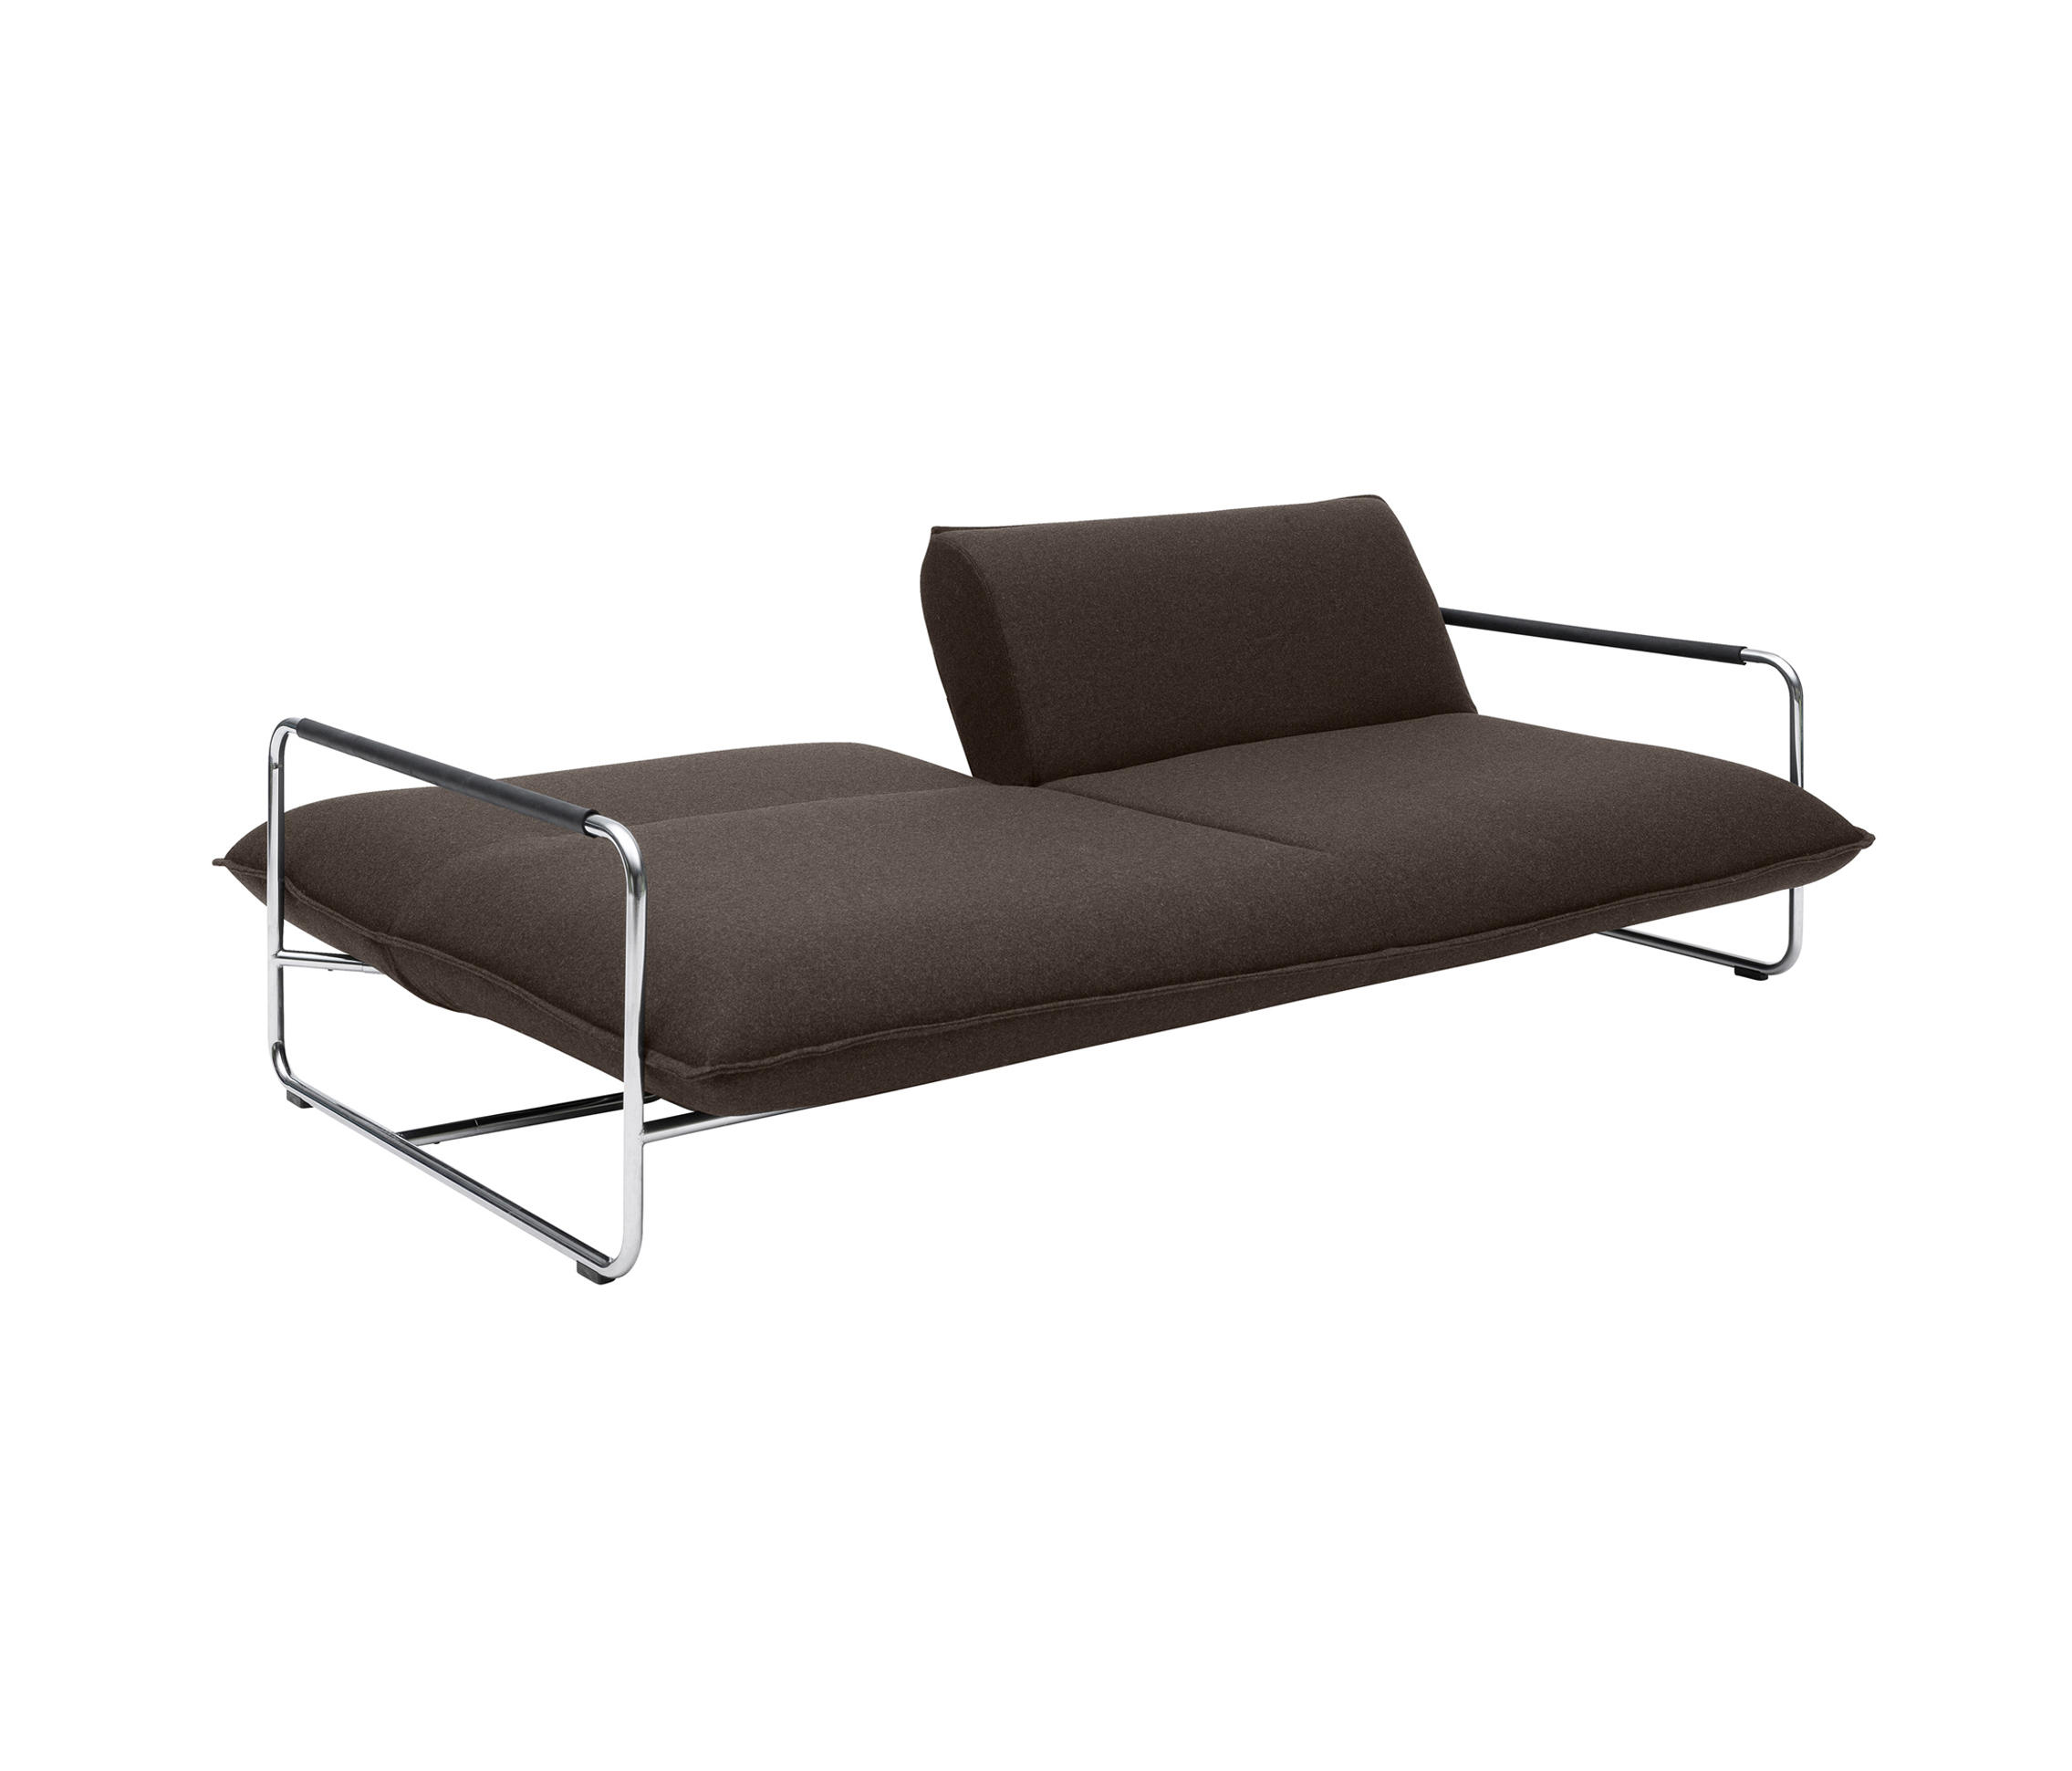 NOVA Sofa beds from Softline A S